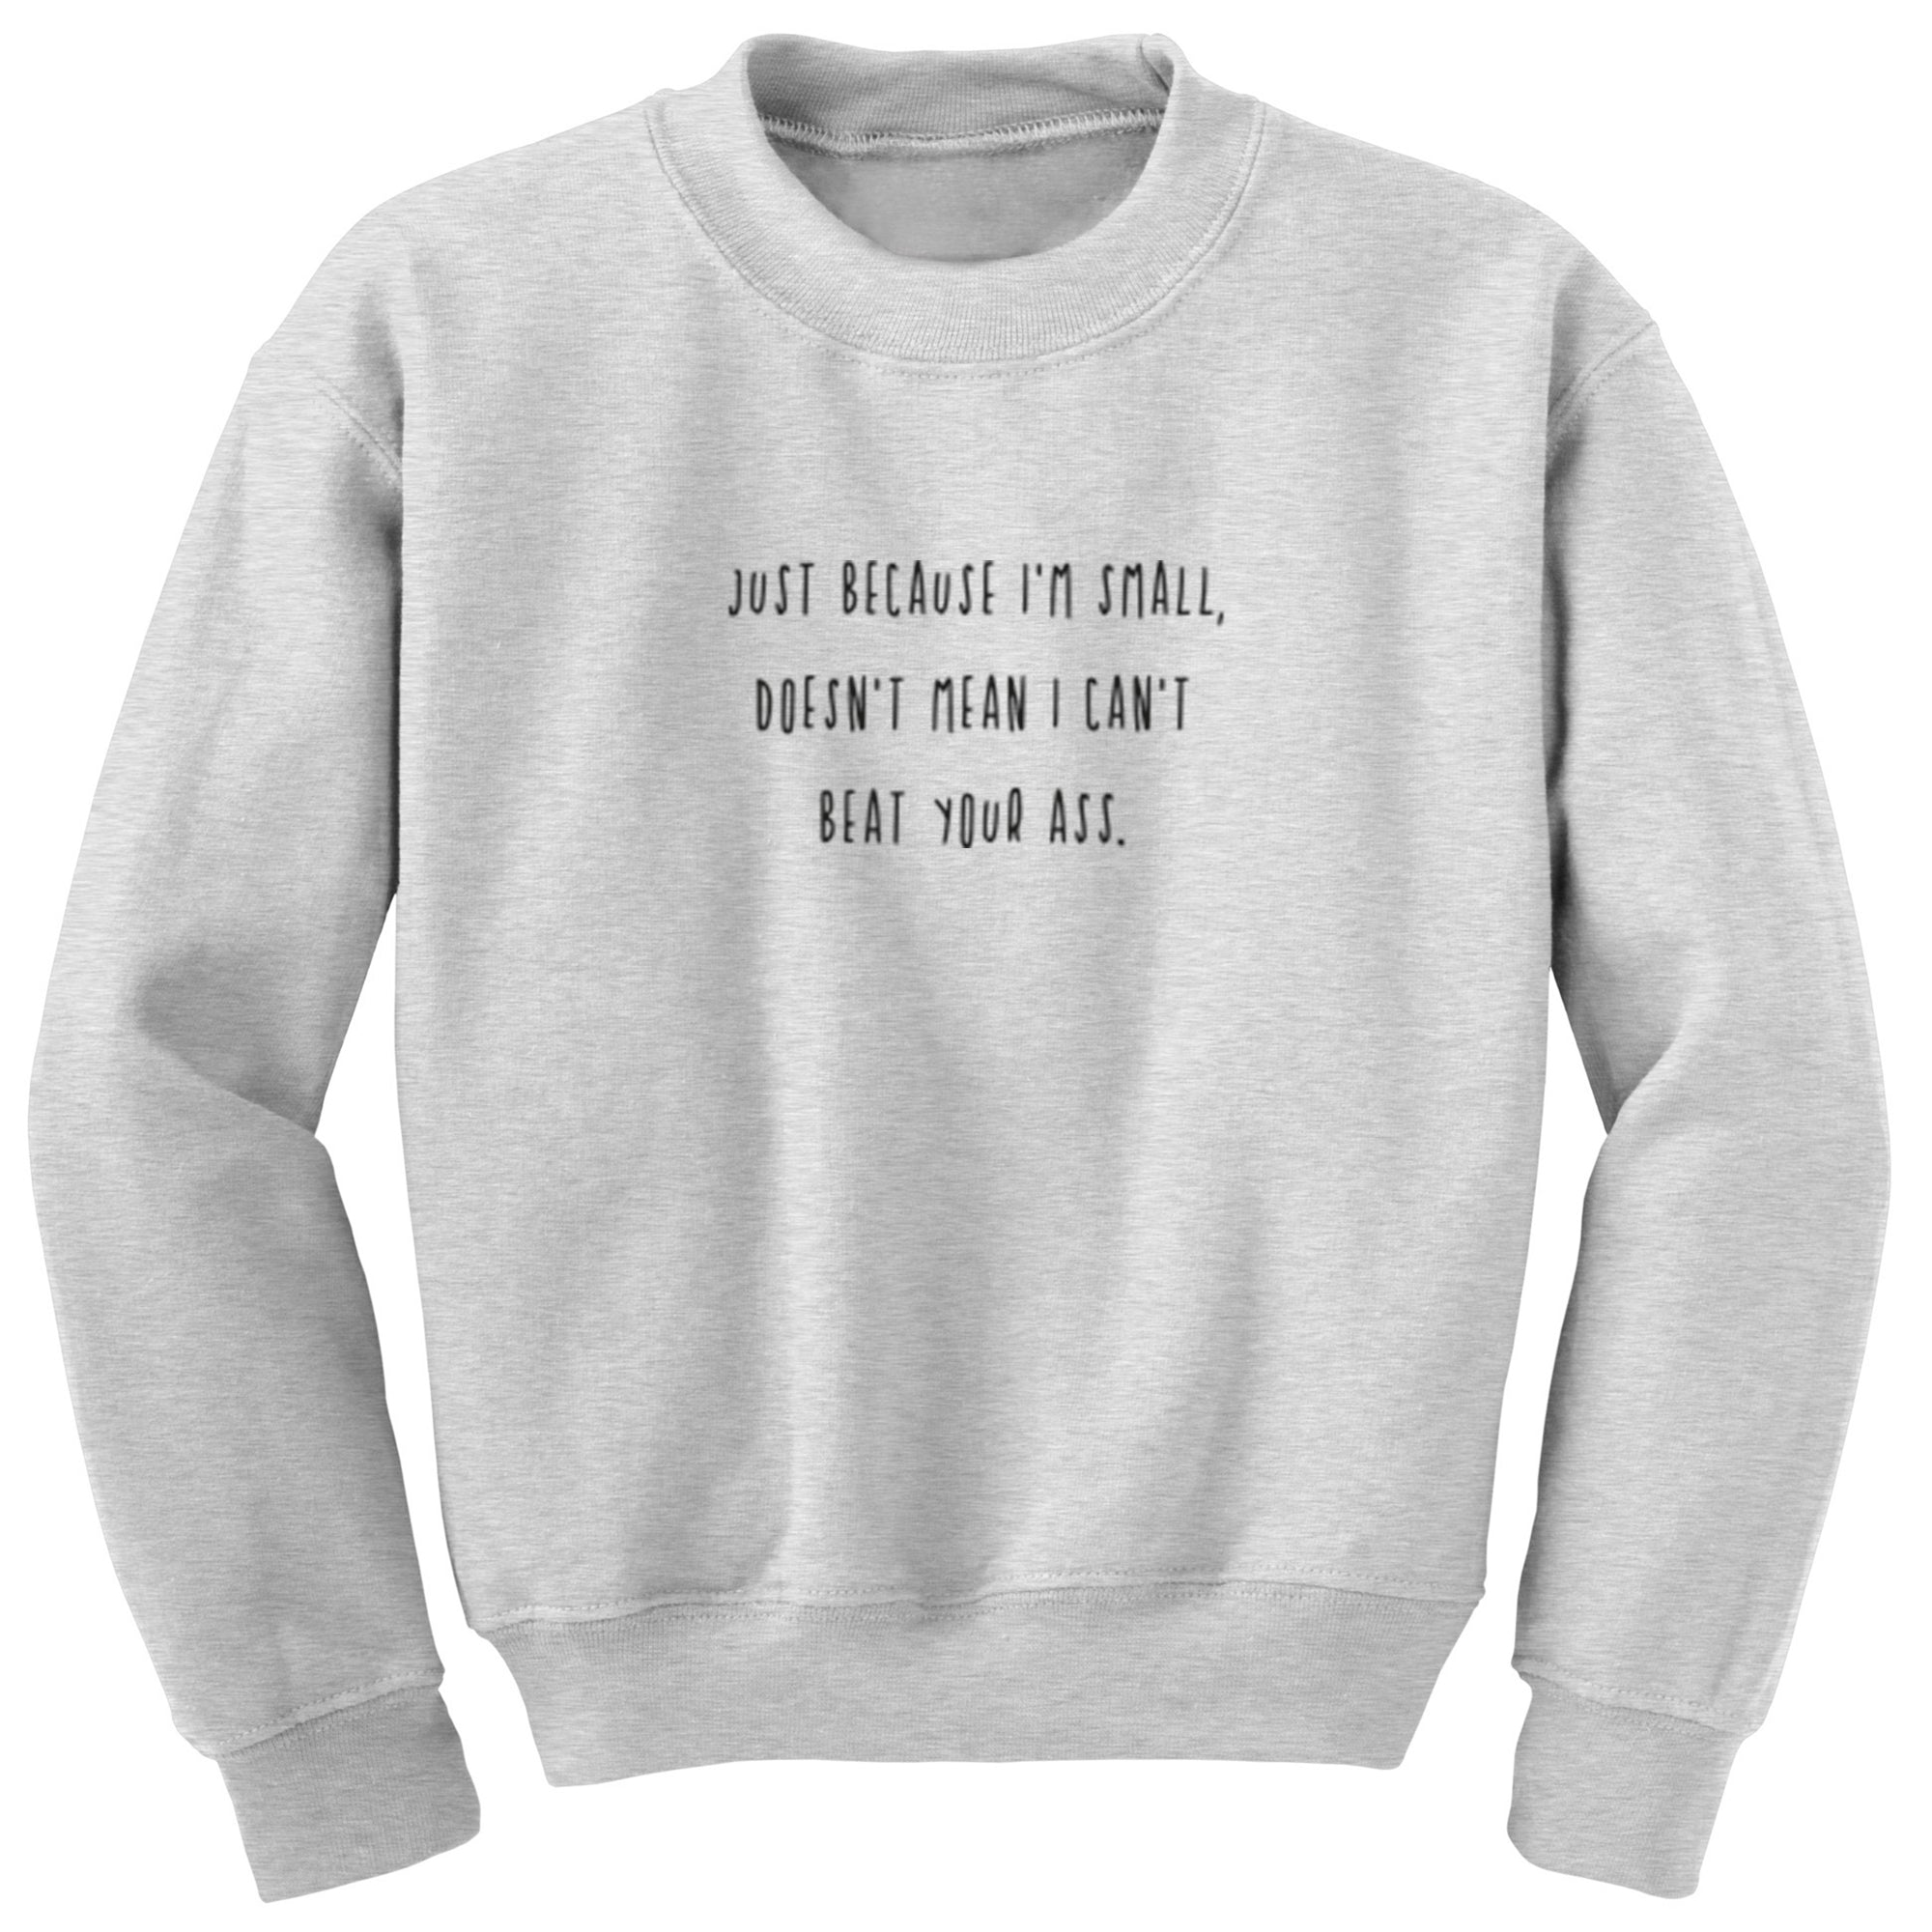 Just Because I'm Small, Doesn't Mean I Can't Beat Your Ass Unisex Jumper S1164 - Illustrated Identity Ltd.